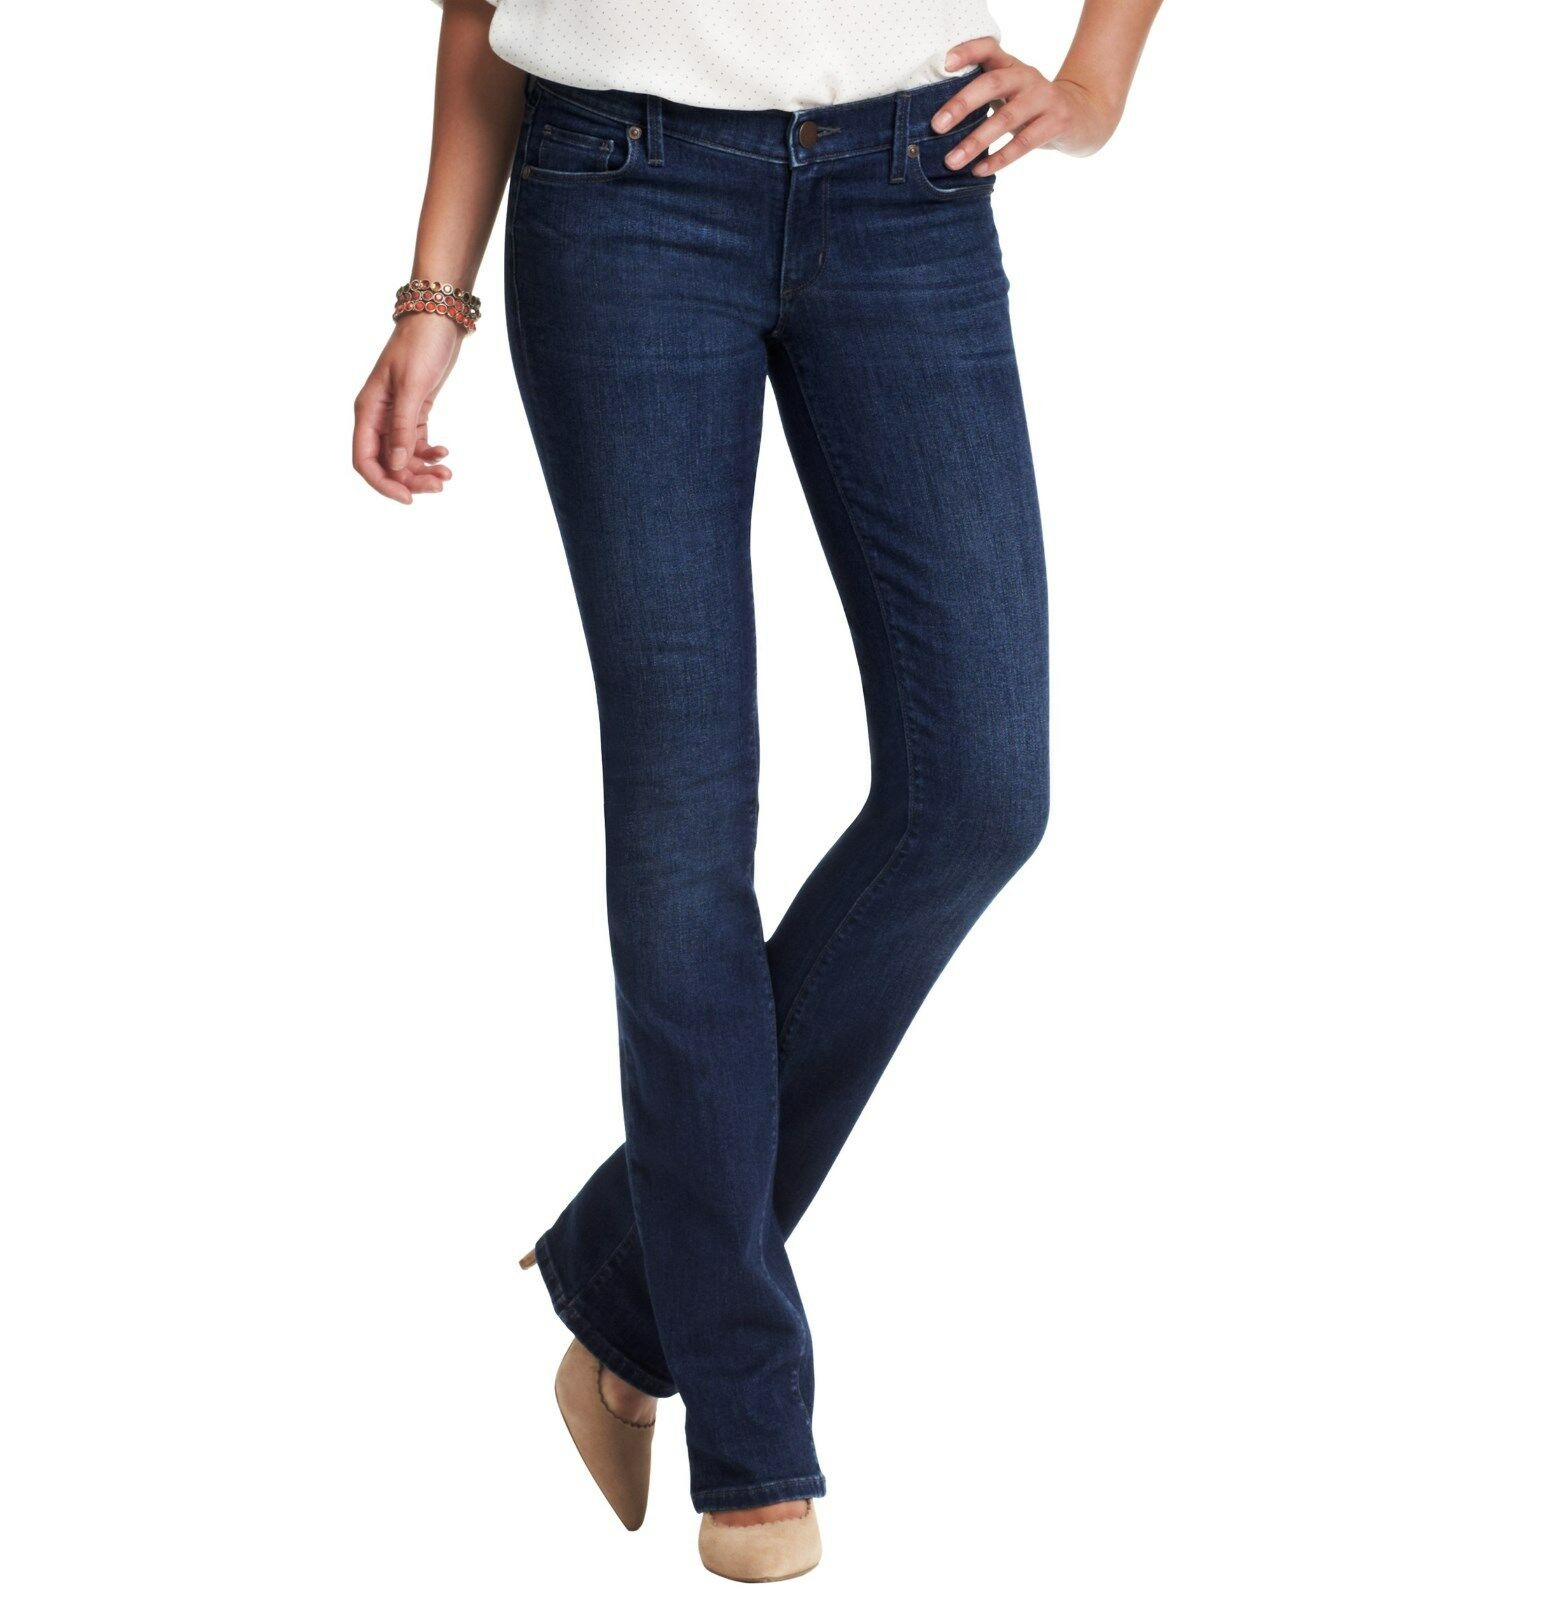 NWT Ann Taylor Loft Petite Modern Sexy Boot Jeans in Winded bluee Wash 00P v